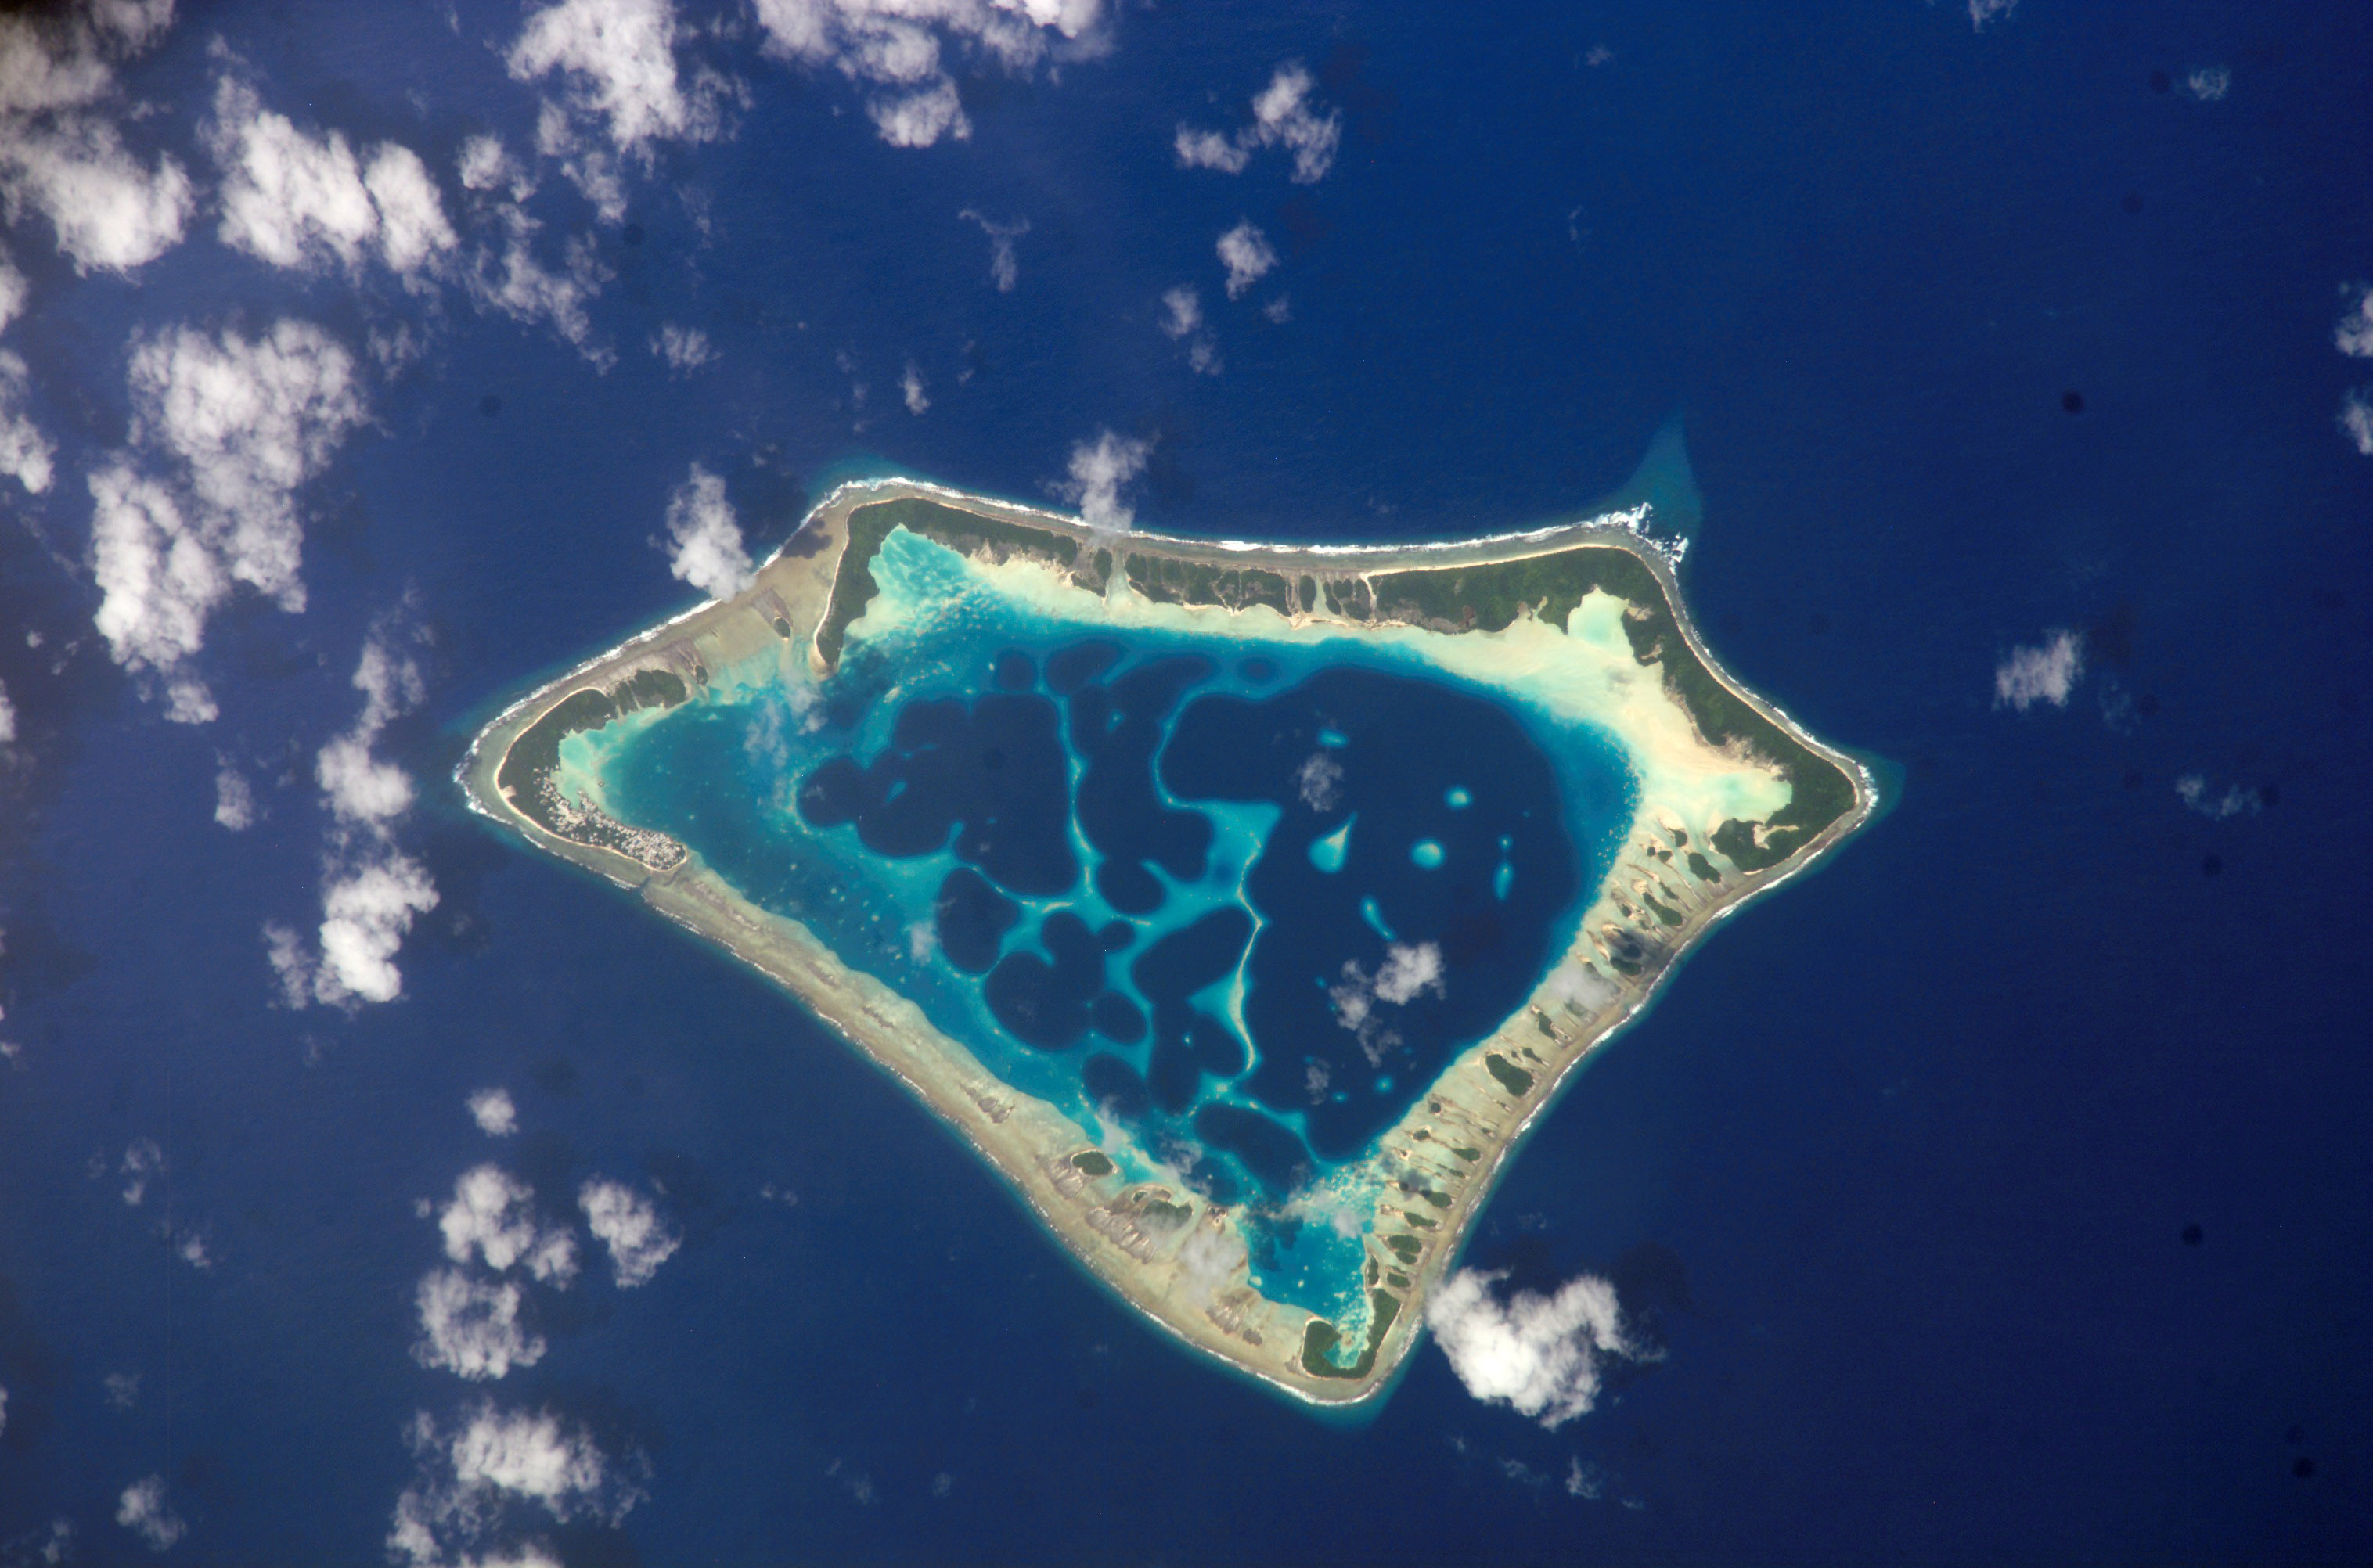 A ring-shaped island with a shallow lagoon in the interior and deep blue ocean water surrounding. Where visible, the island ring itself is white with greenery.